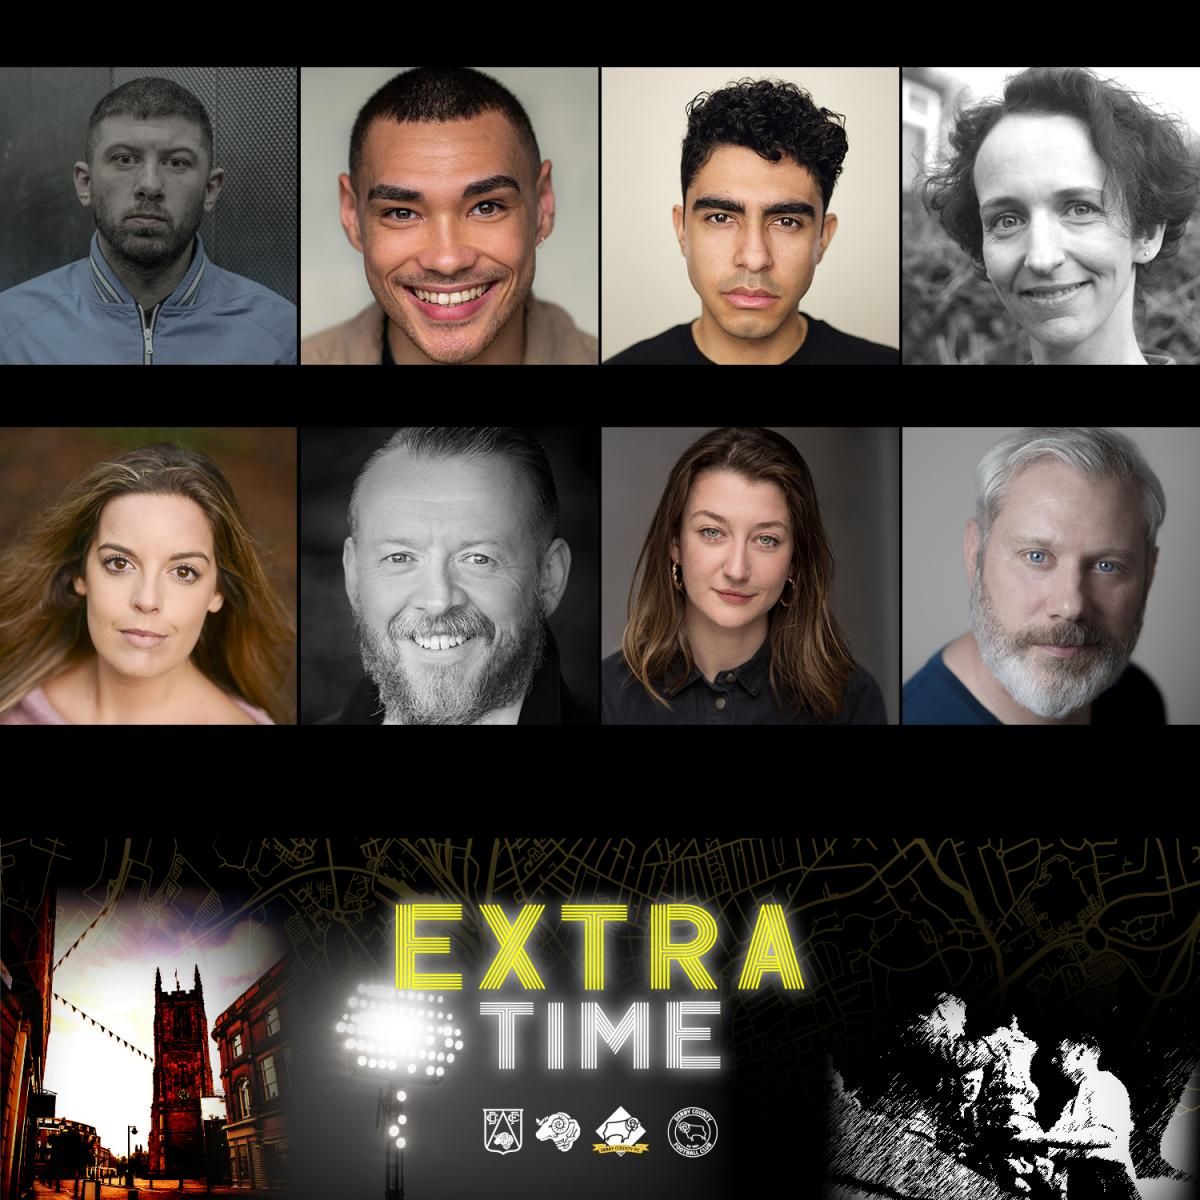 Extra Time cast announcement with headshots